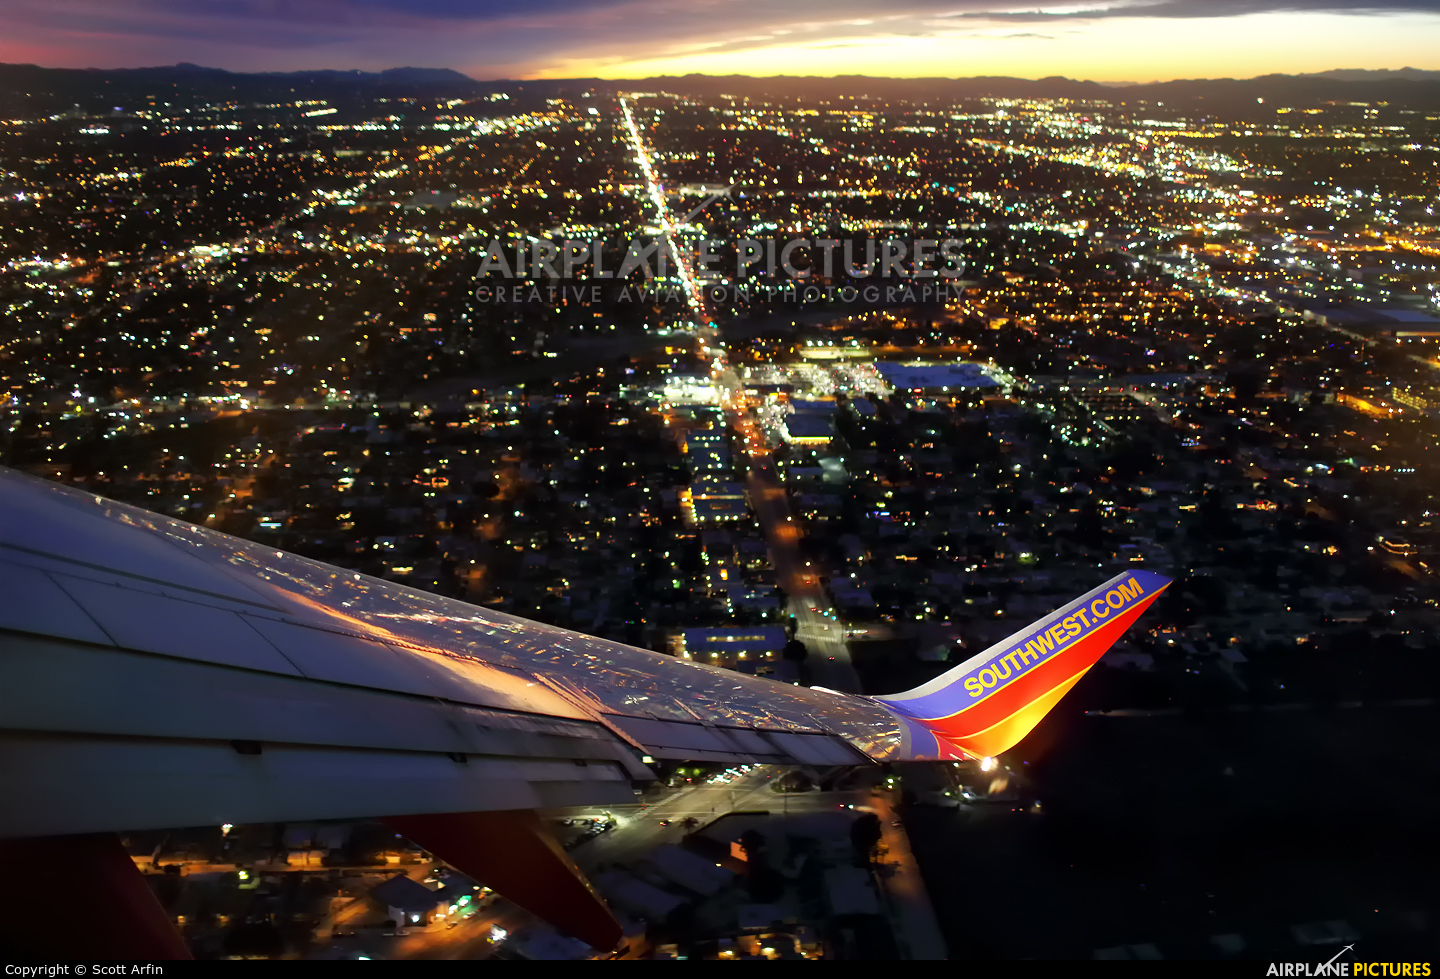 Southwest Airlines N788SA aircraft at In Flight - California